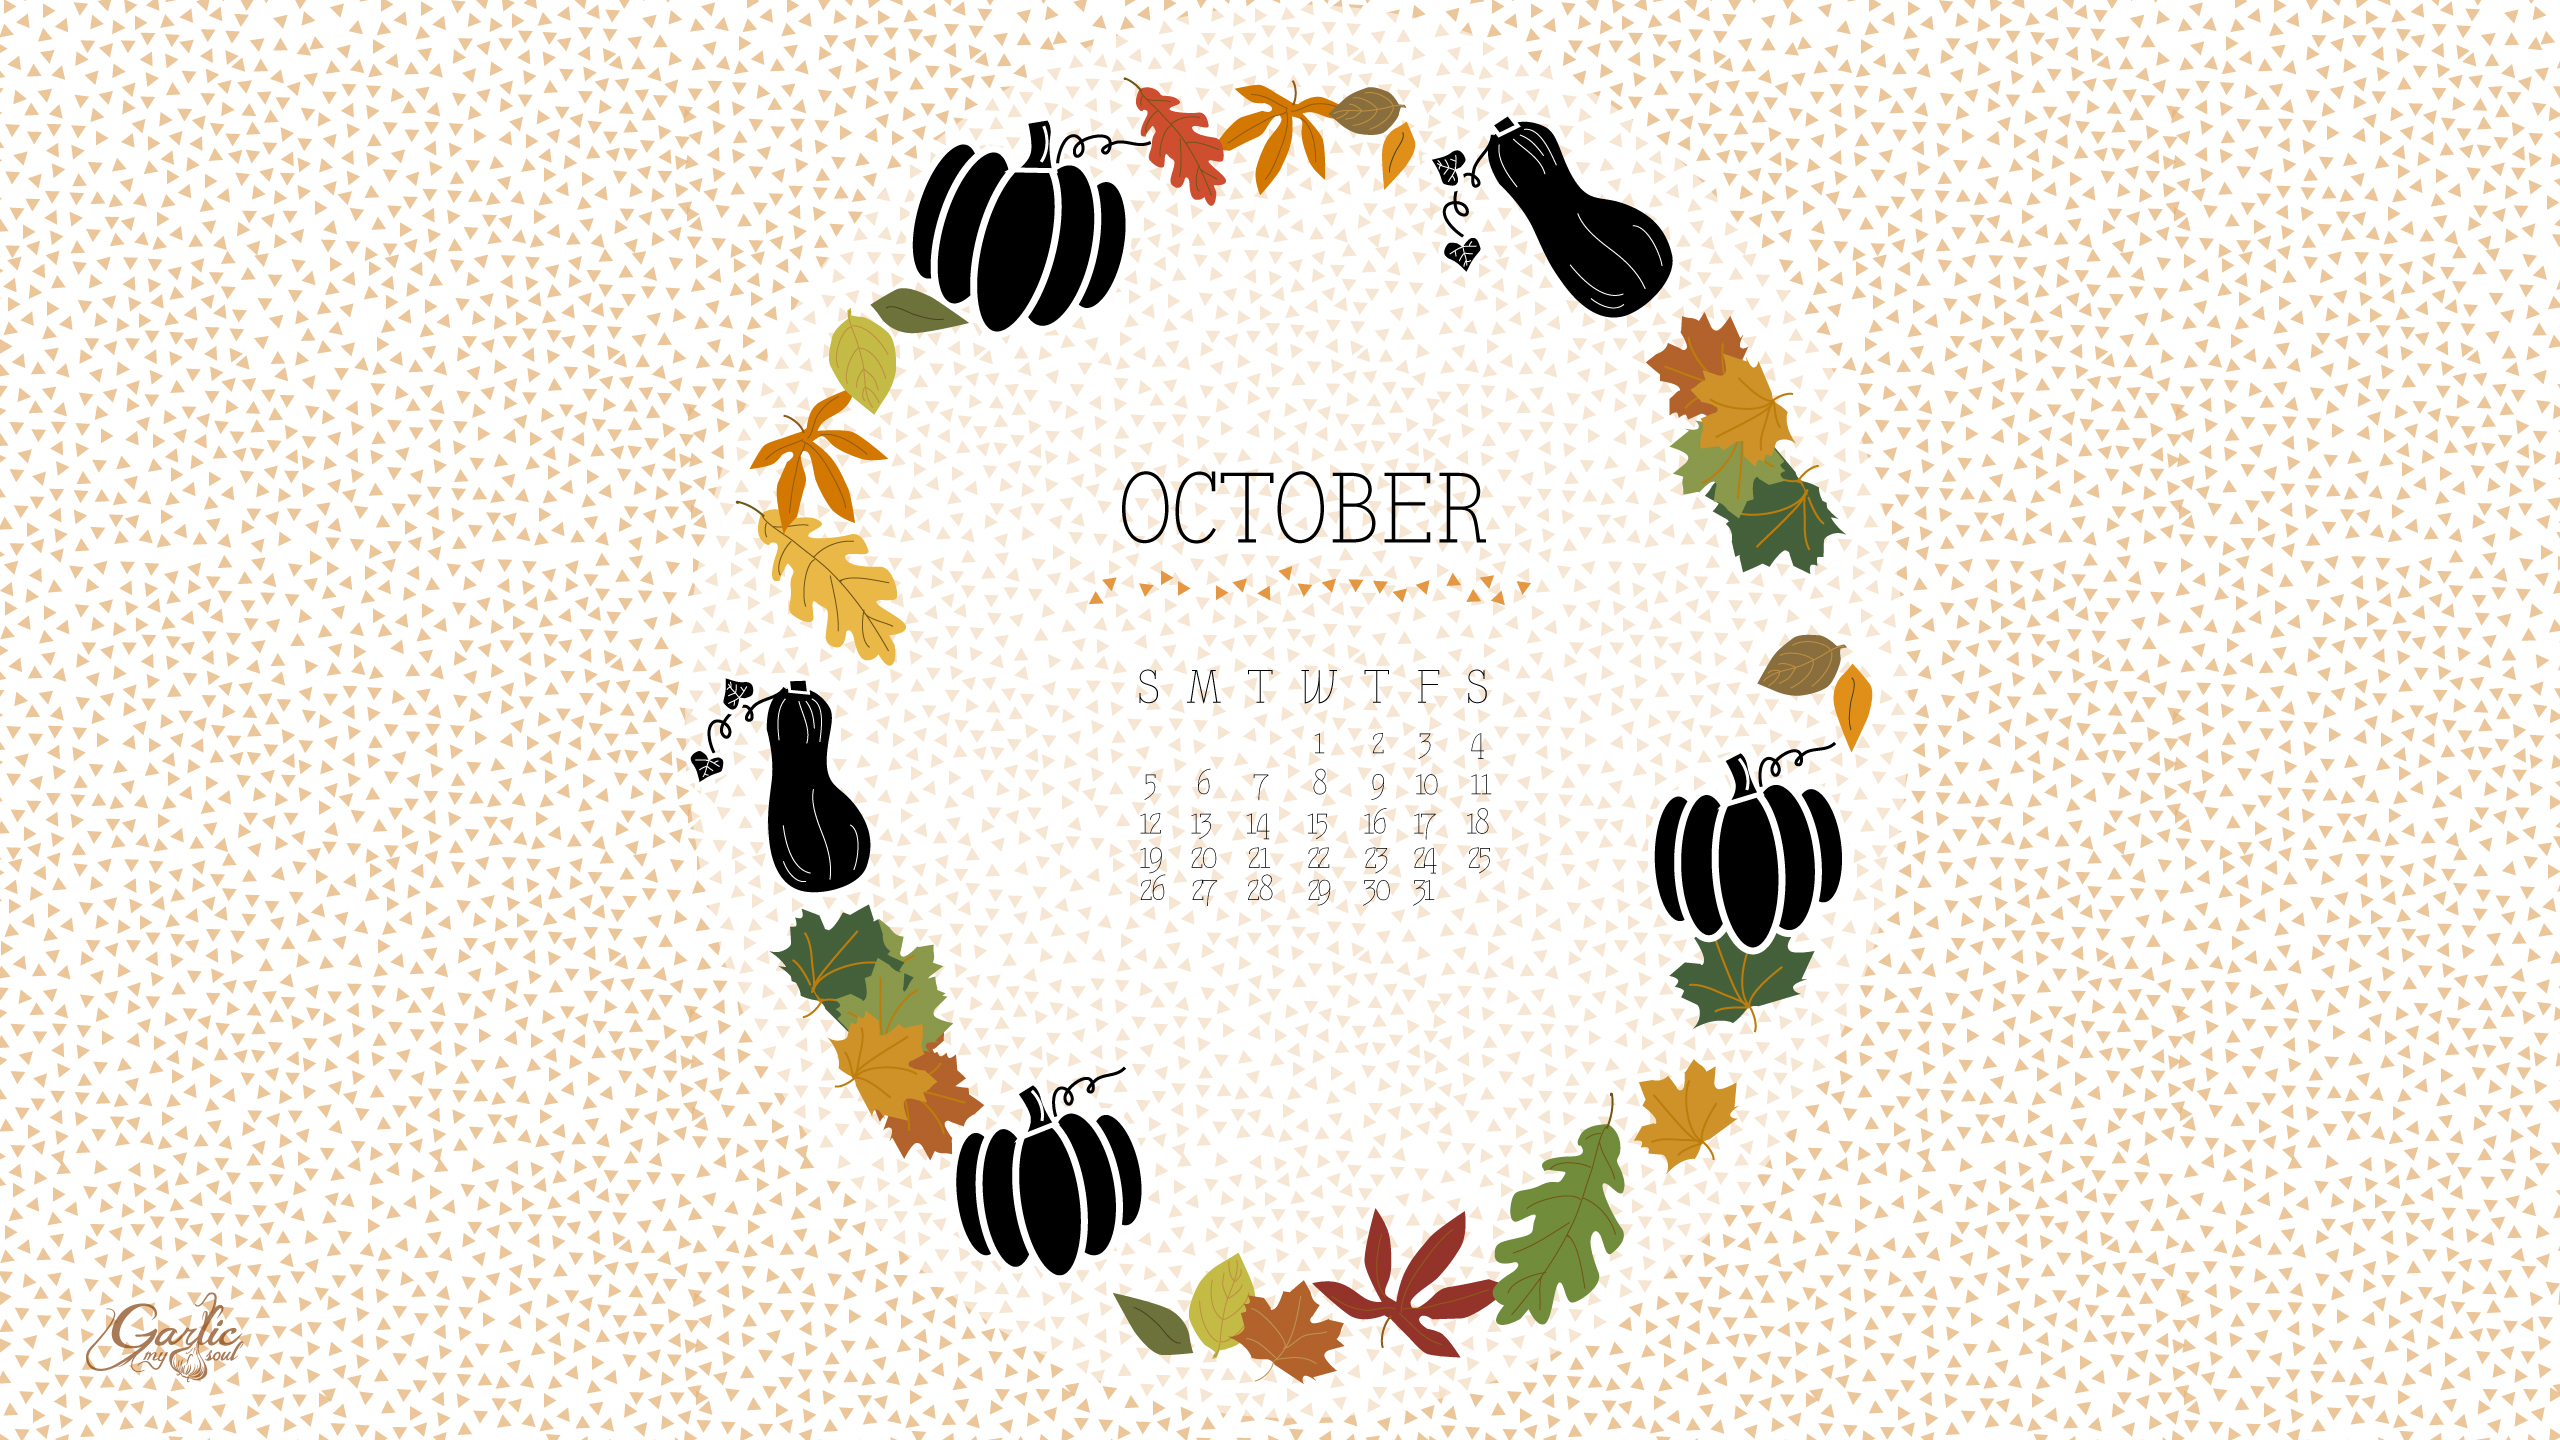 October Desktop Calendar | Garlic, My Soul